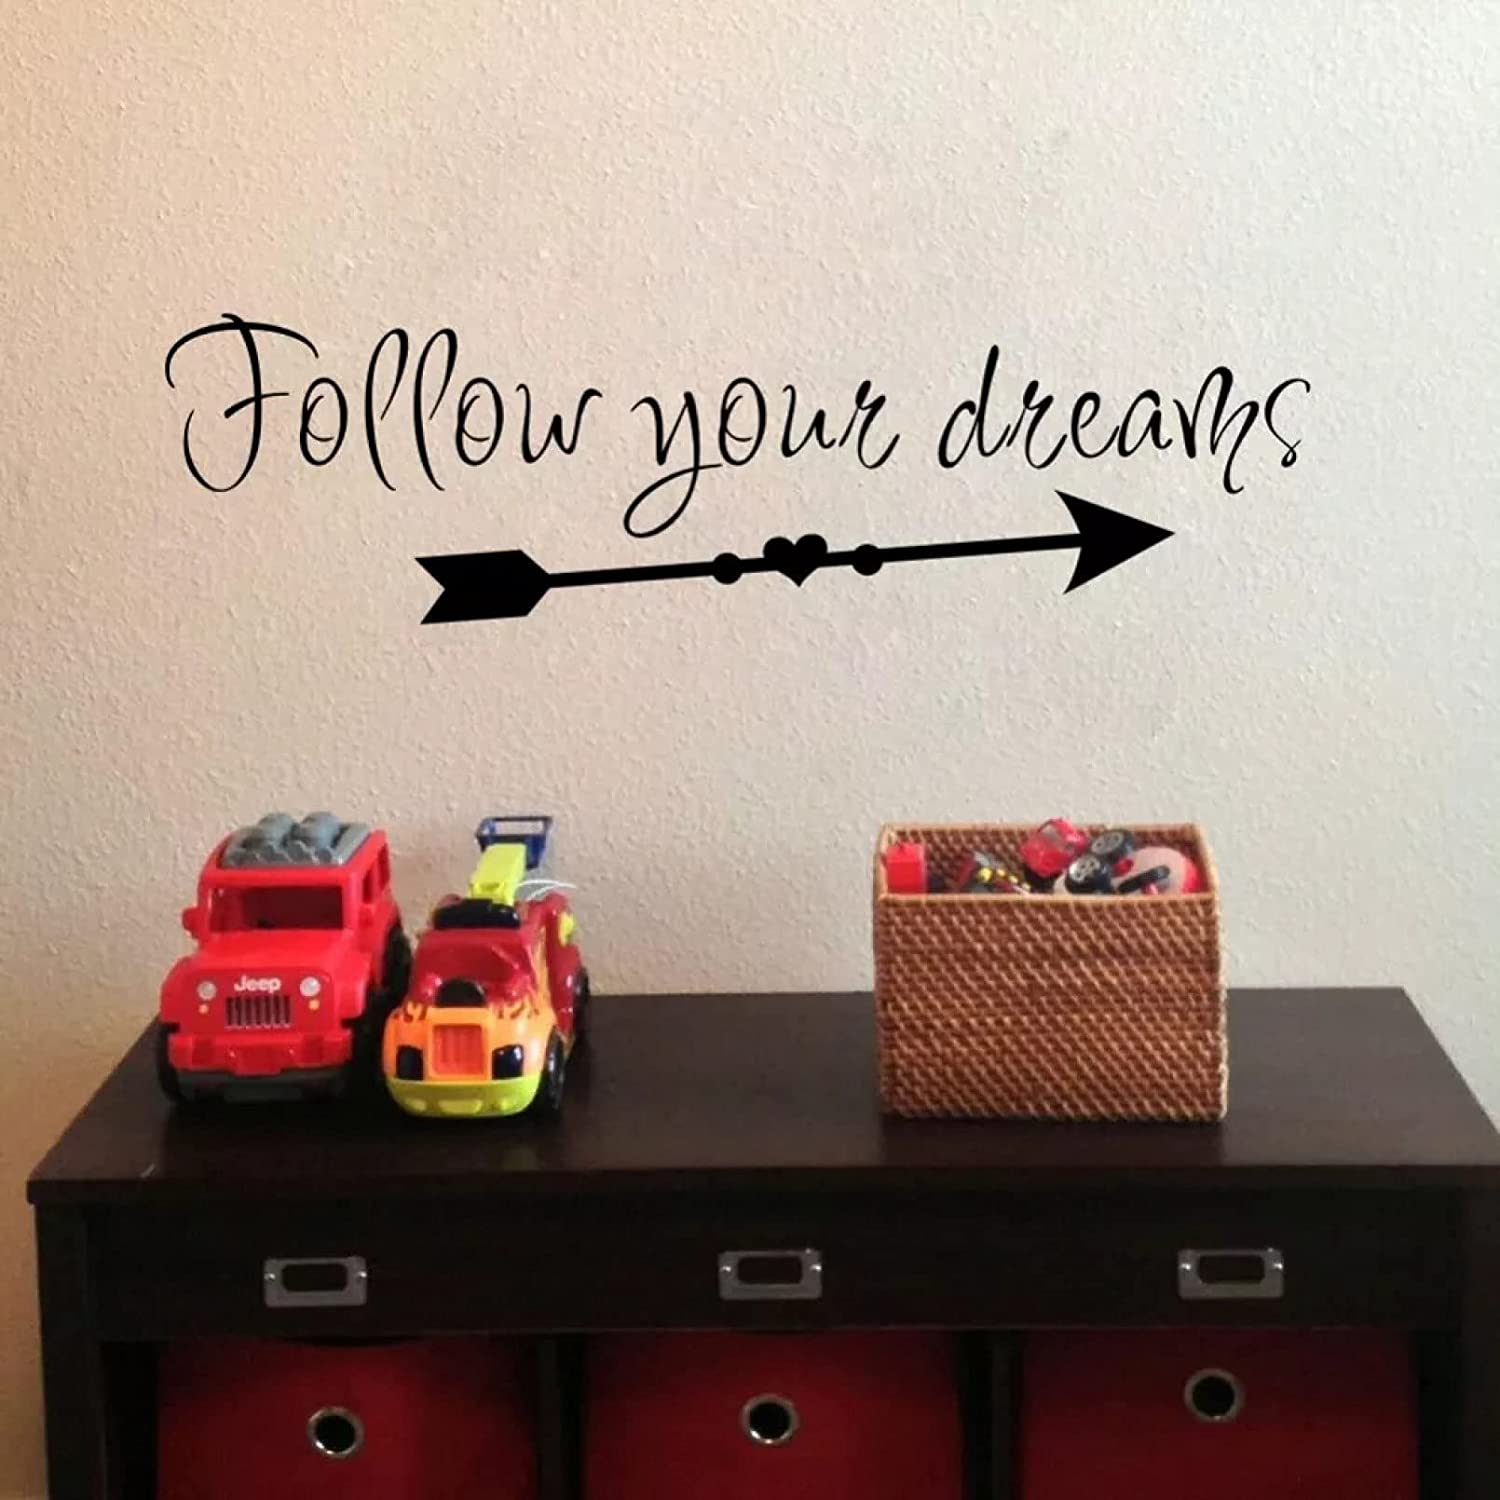 Follow Your Dream Wall Easy-to-use Sticke Lettering Sale Special Price Inspiration Sticker